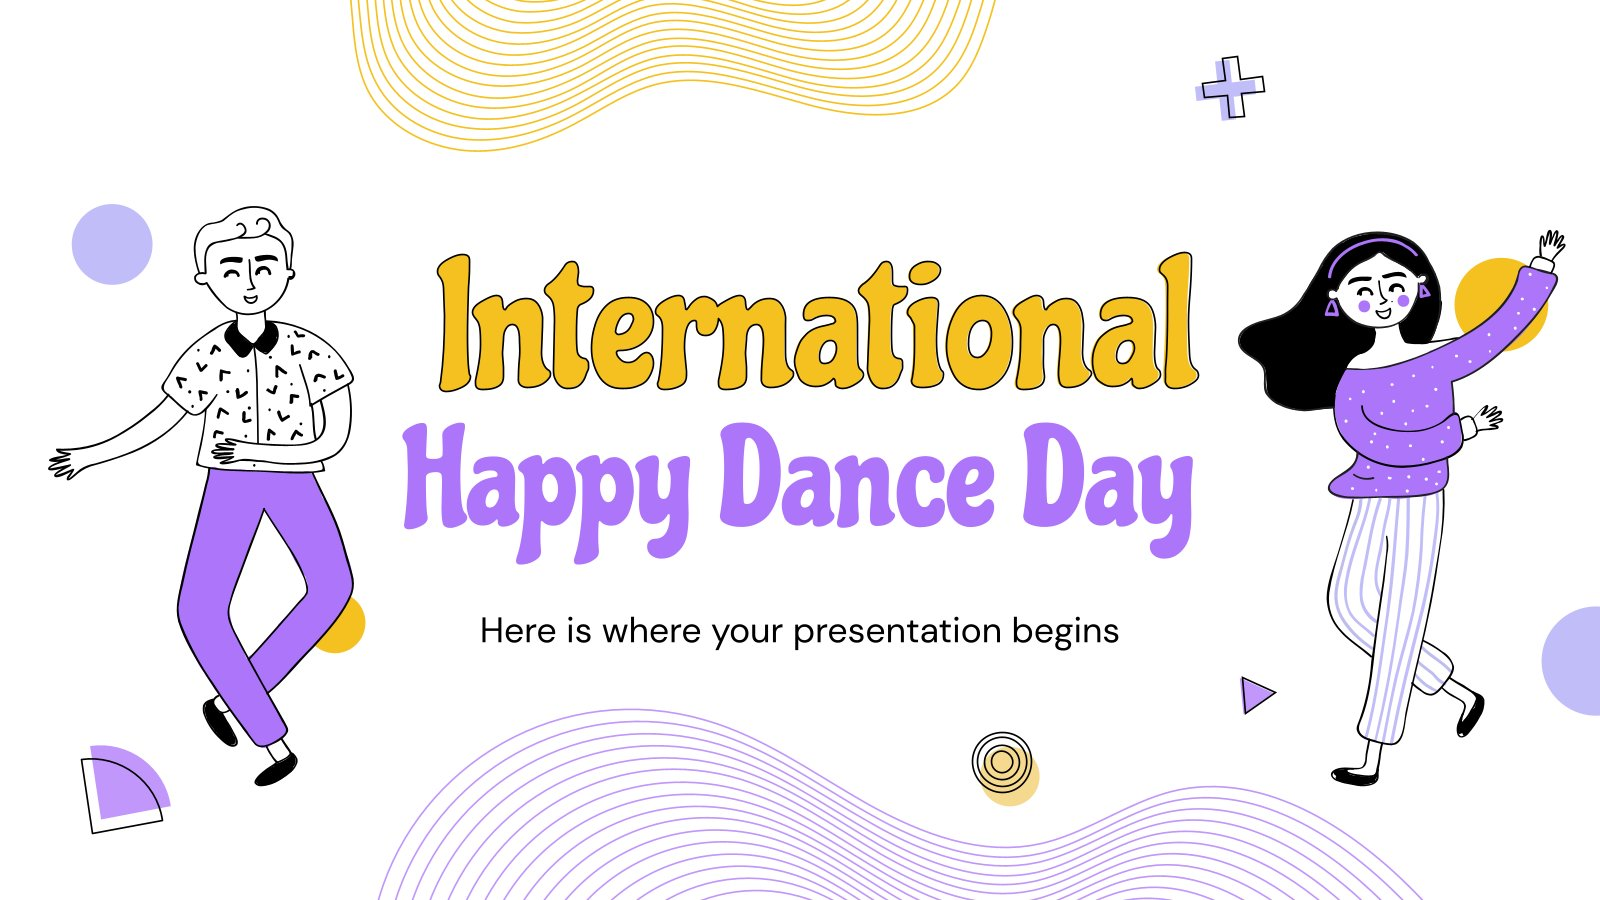 International Happy Dance Day presentation template